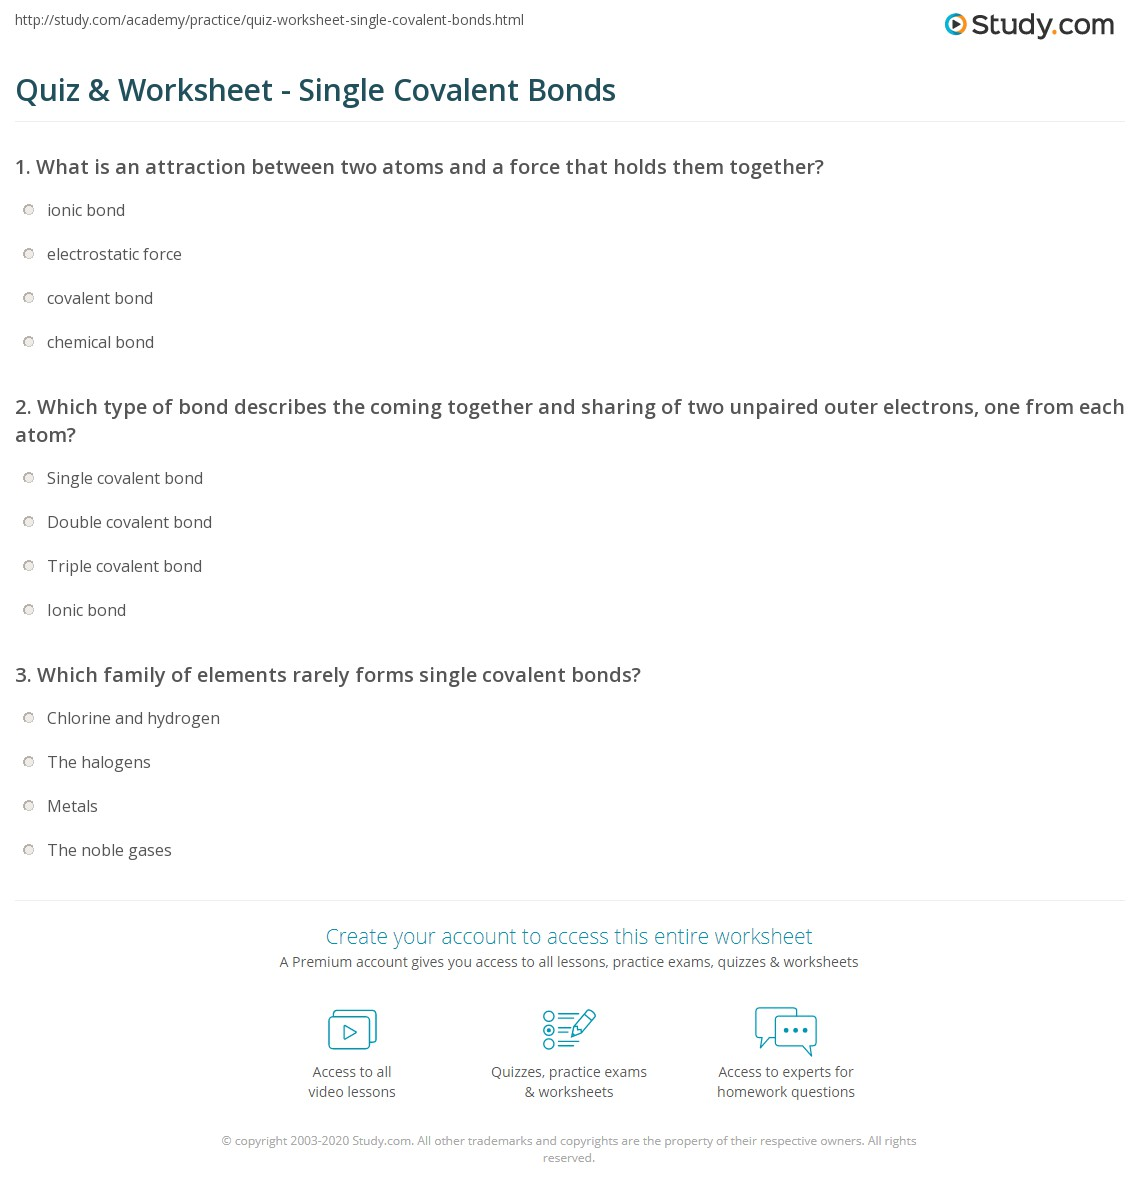 Quiz Worksheet Single Covalent Bonds Study Com